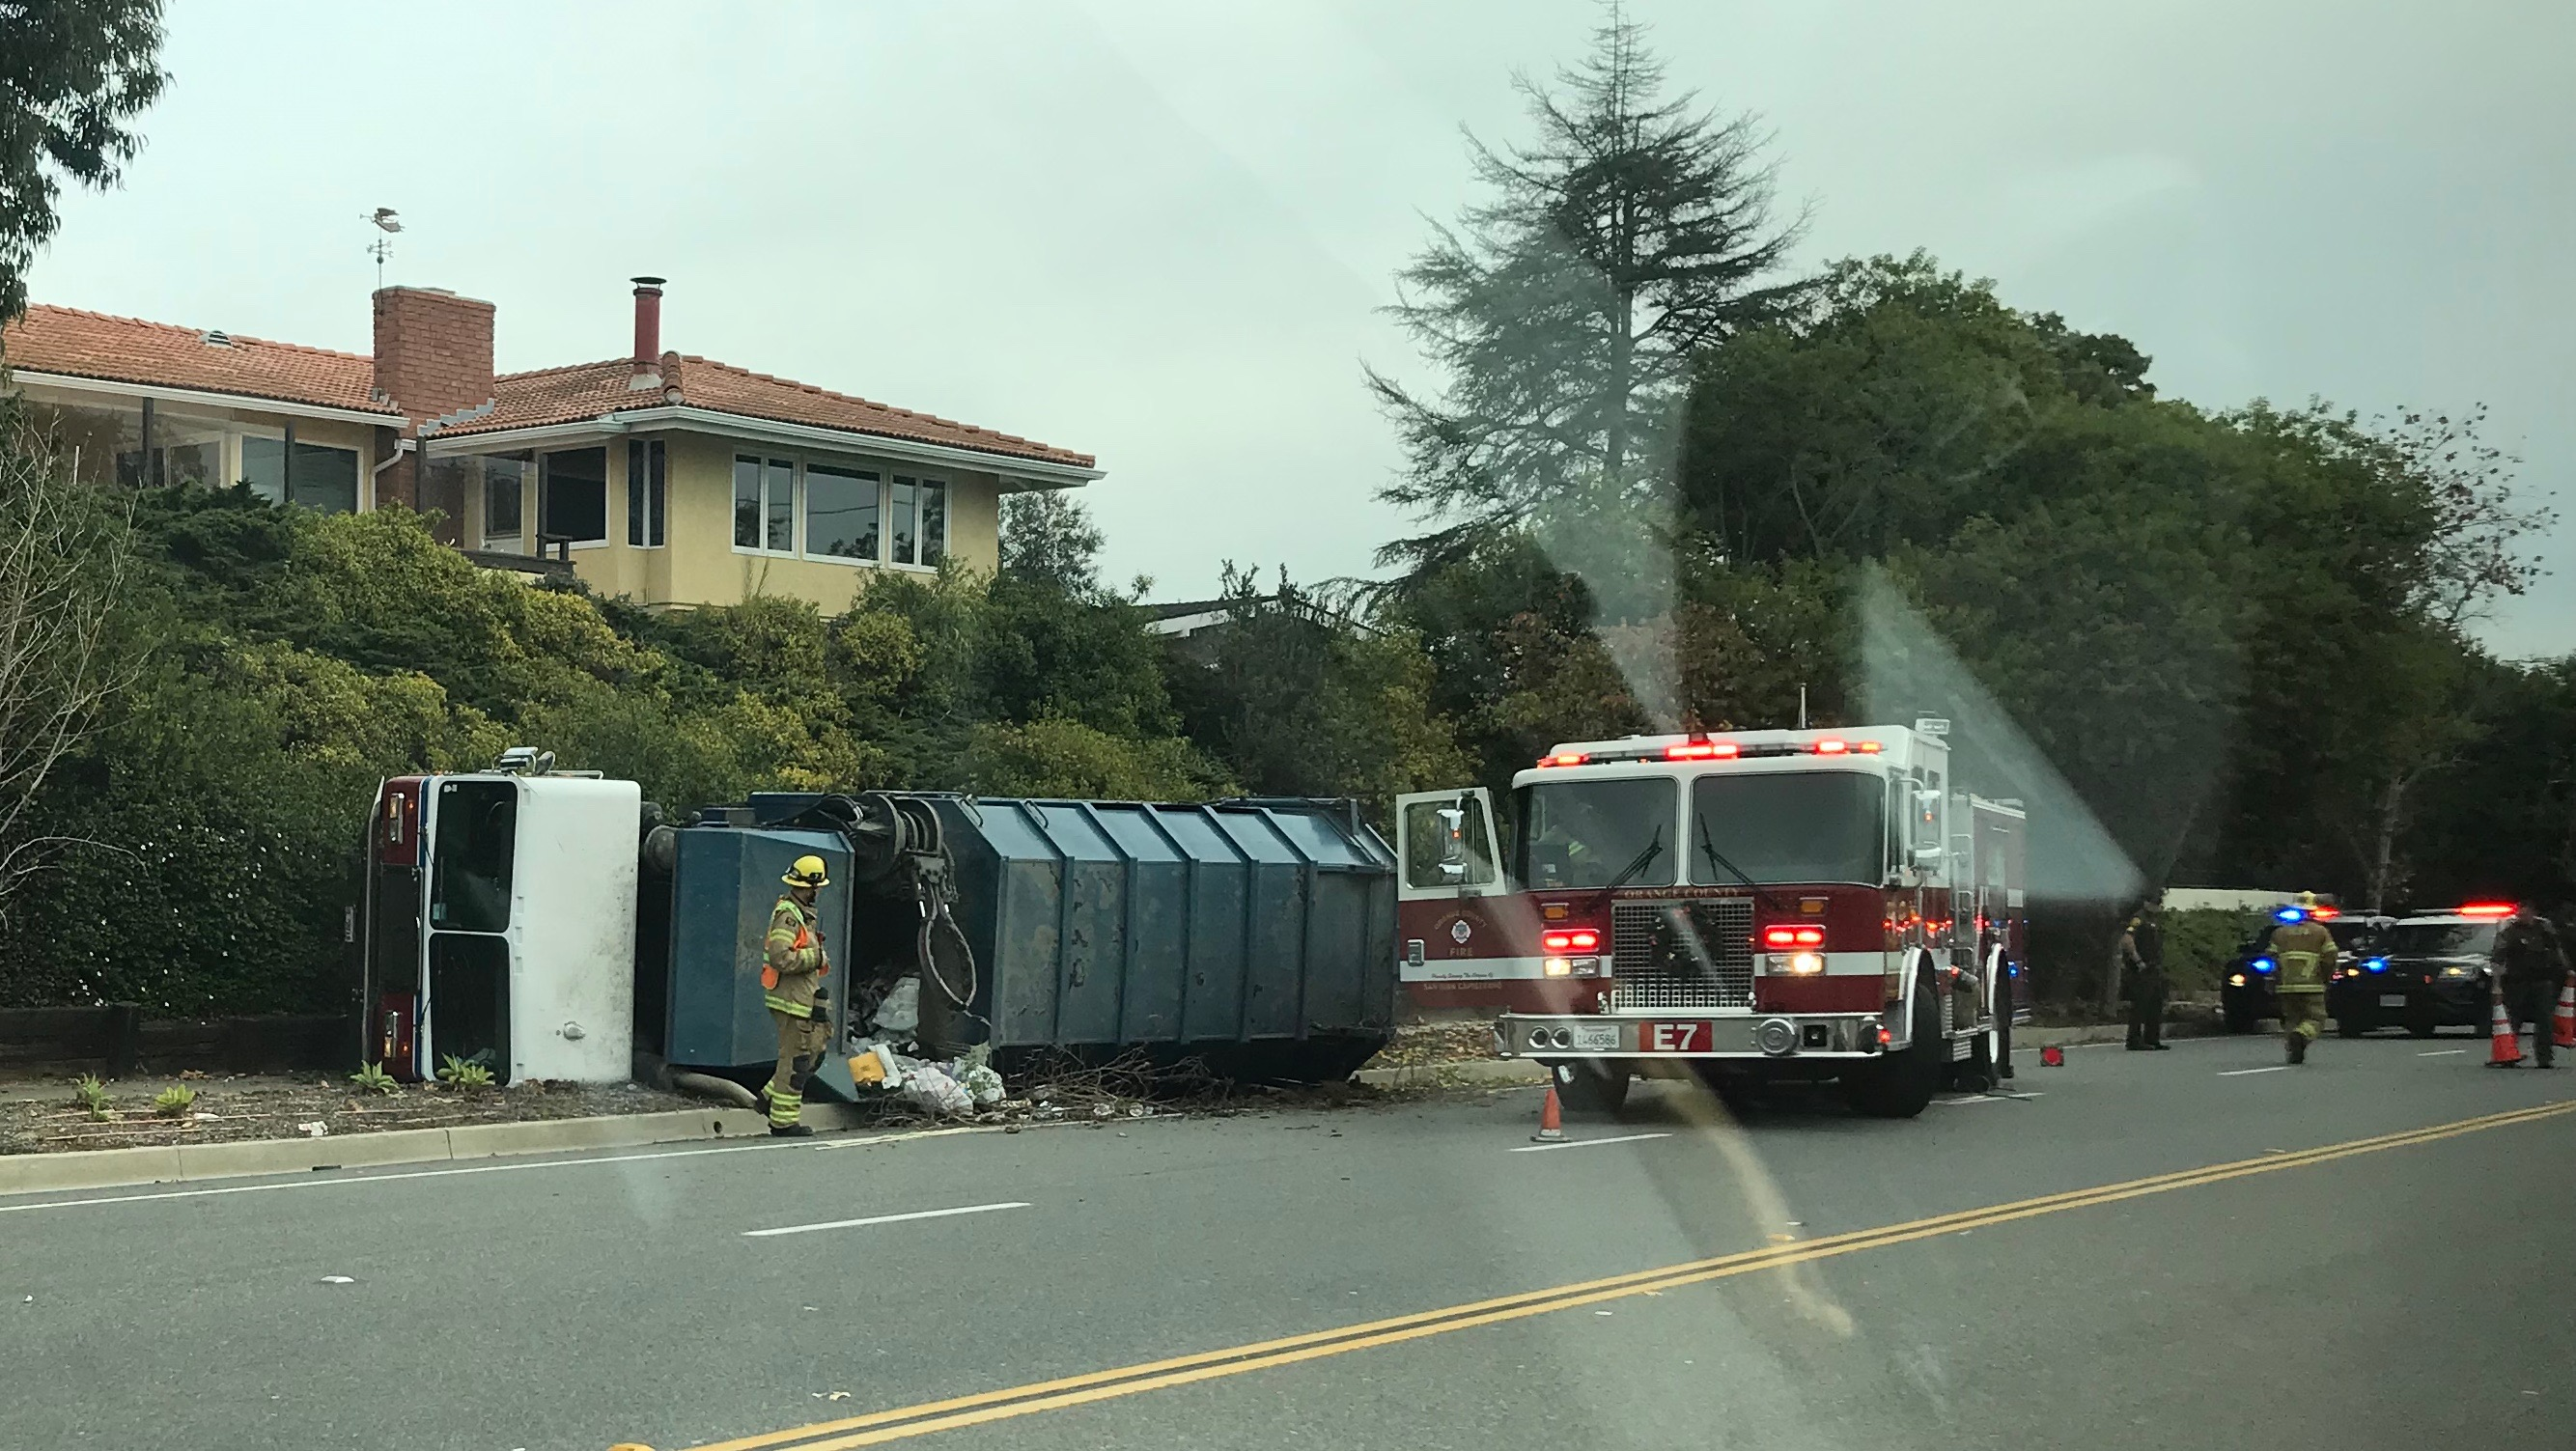 Orange County Fire Authority crews respond to a traffic collision involving a rolled over garbage truck at Del Obispo Street and Via Belardes in San Juan Capistrano the morning of Friday, Dec. 13. Photo Courtesy of Steve Behmerwohld